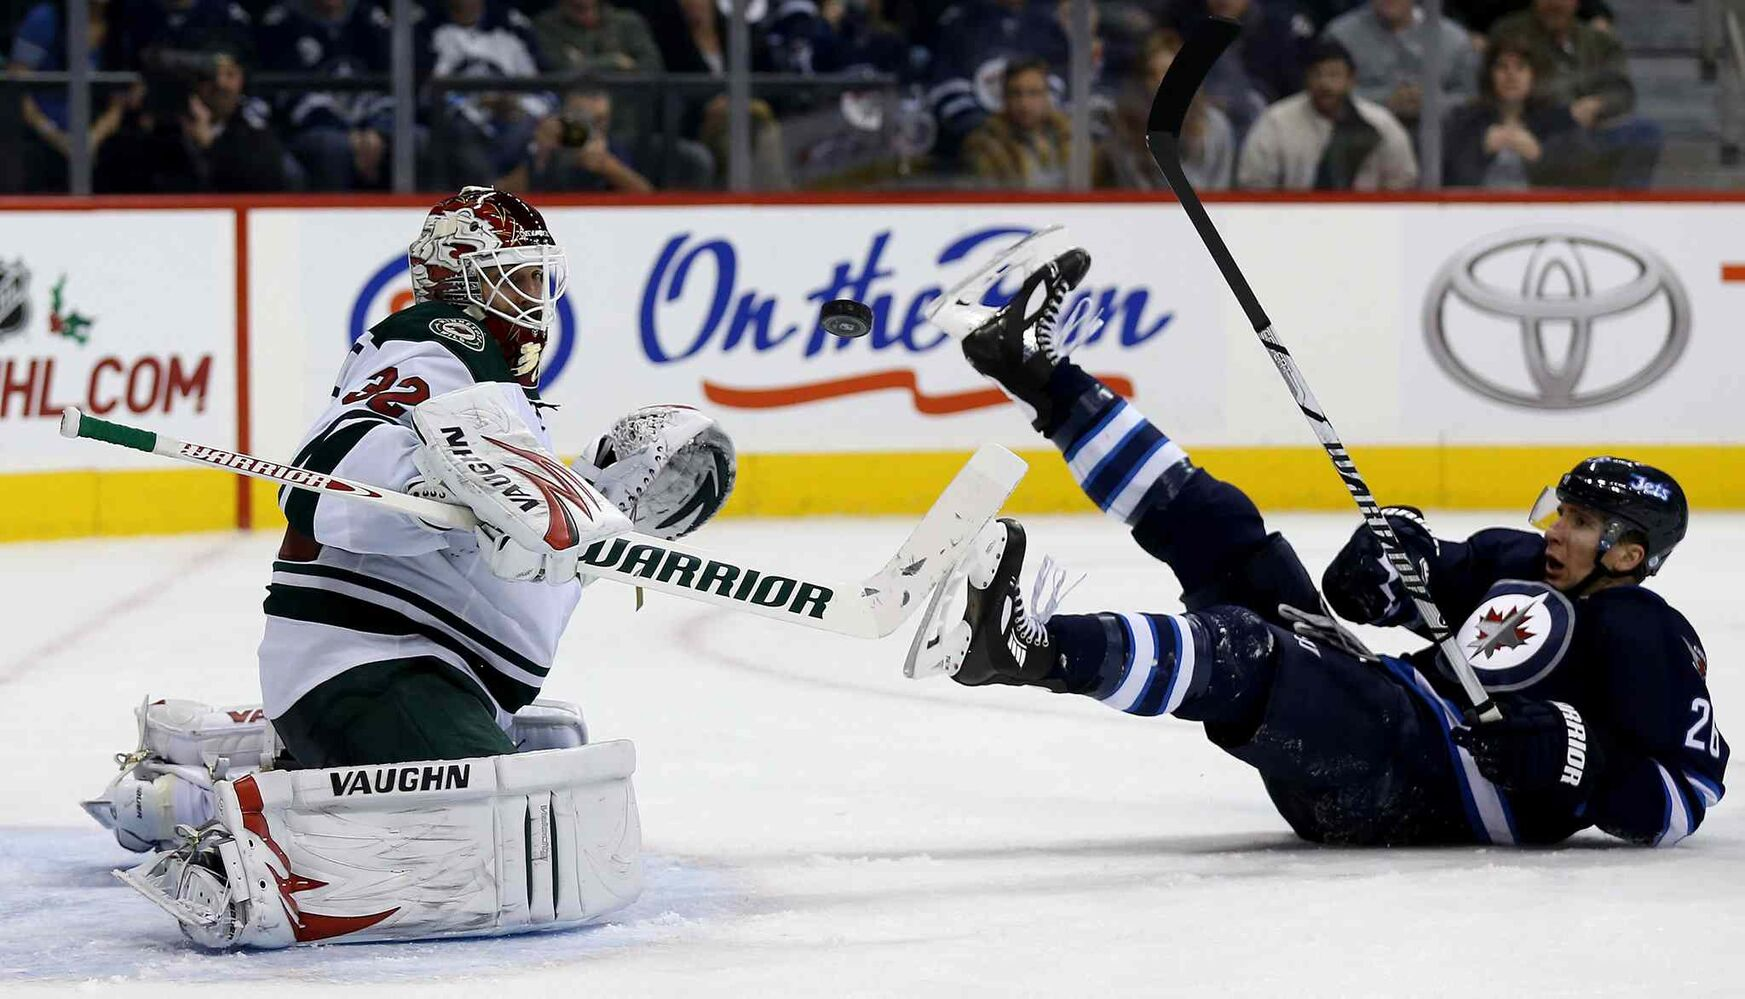 Minnesota Wild goaltender Niklas Backstrom watches a puck as Blake Wheeler slides on the ice during the second period. (TREVOR HAGAN / WINNIPEG FREE PRESS)